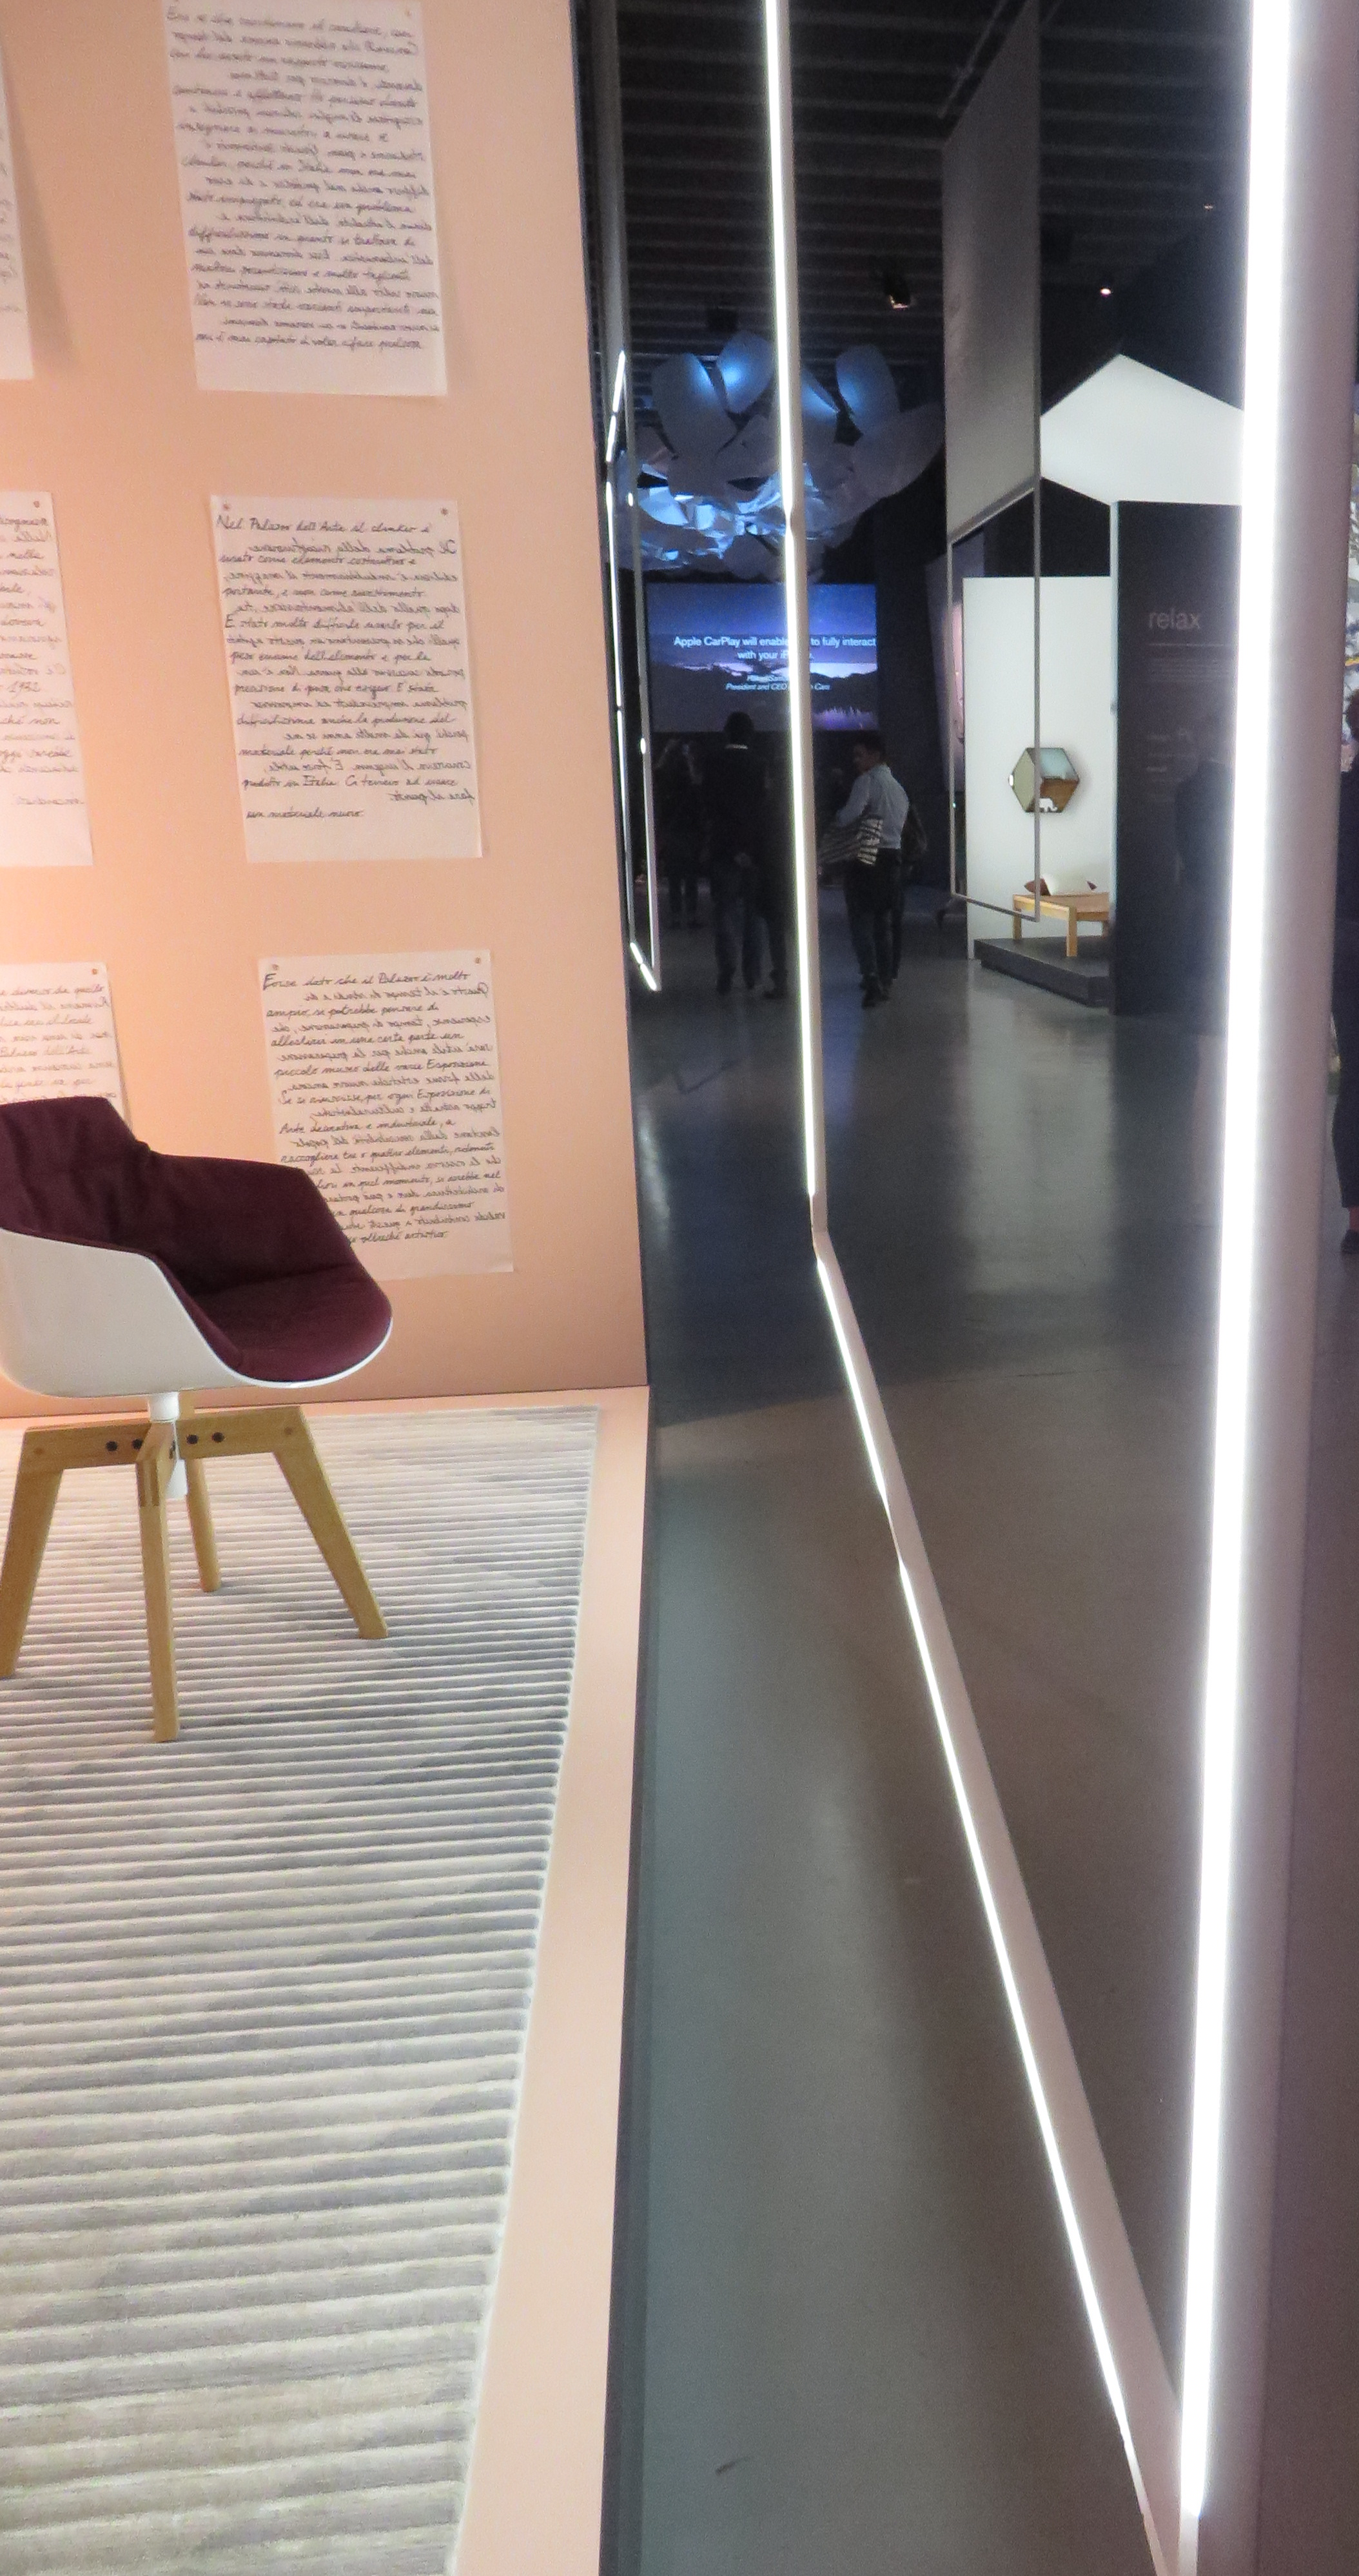 Chiara rubessi ideas and projects for thinking spaces for Vergani home arredamento